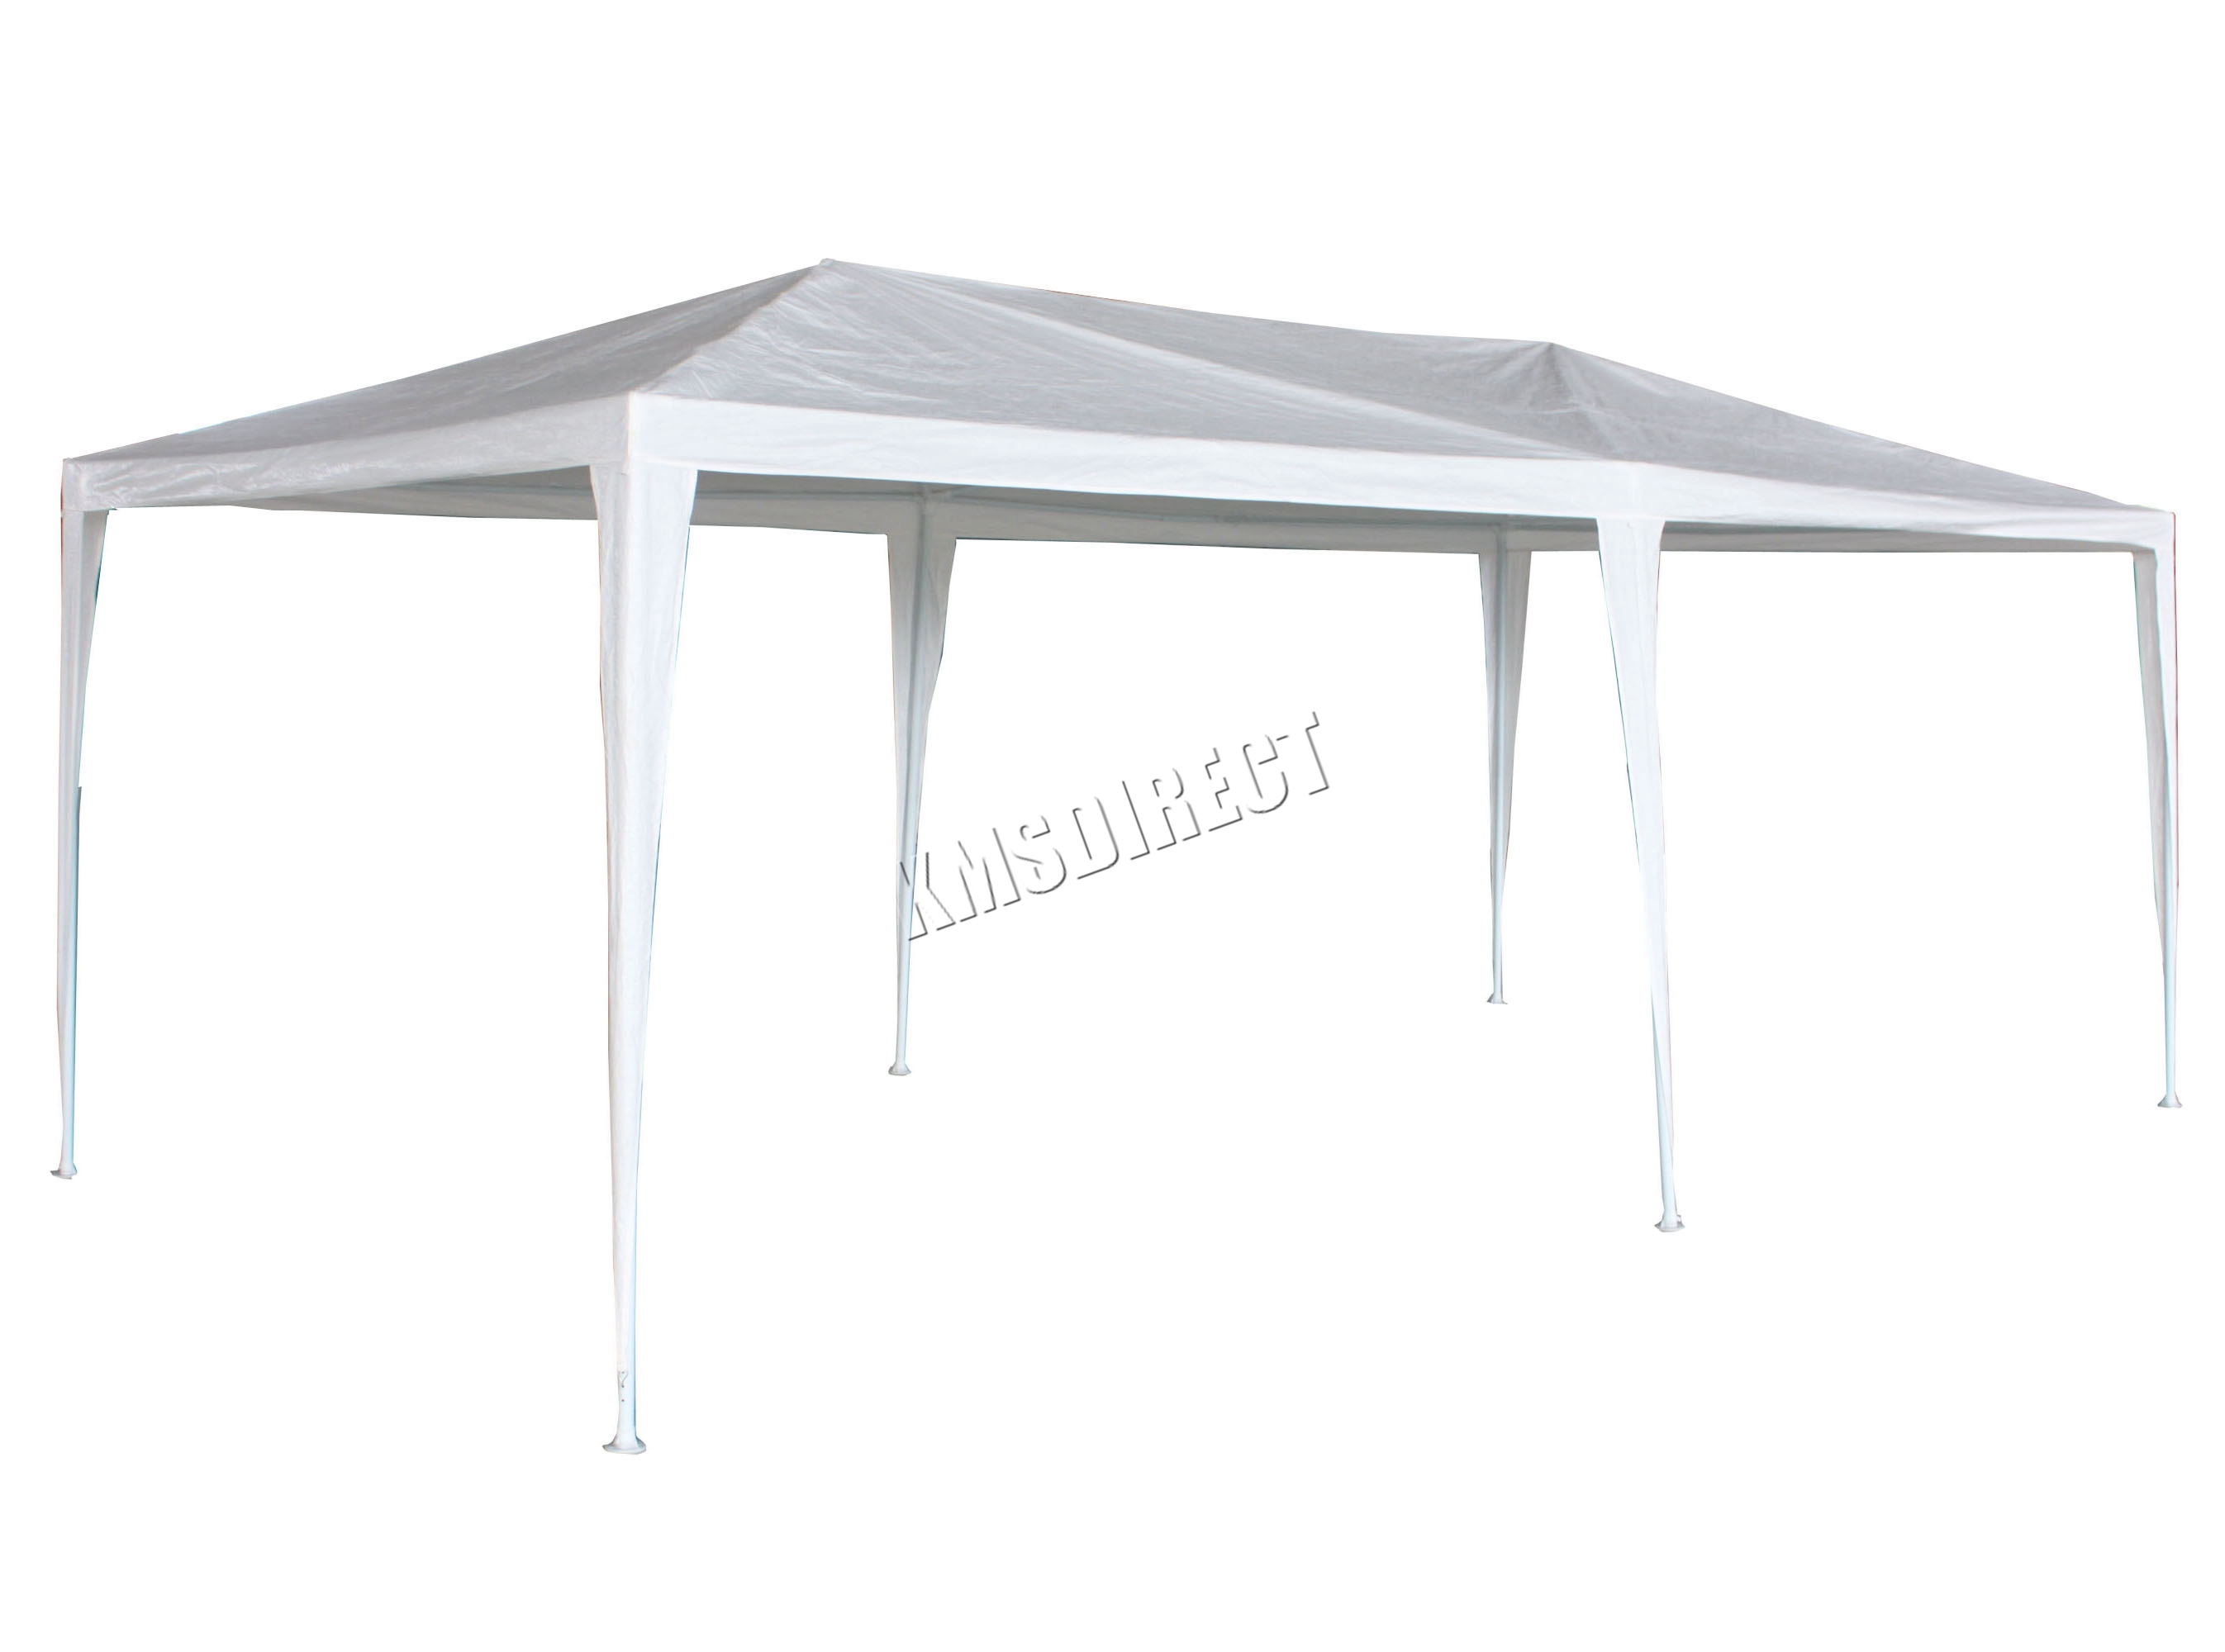 Sentinel 3m x 6m White Waterproof Outdoor Garden Gazebo Party Tent Marquee 2 SUPPORT BEAM  sc 1 st  eBay & 3m x 6m White Waterproof Outdoor Garden Gazebo Party Tent Marquee ...